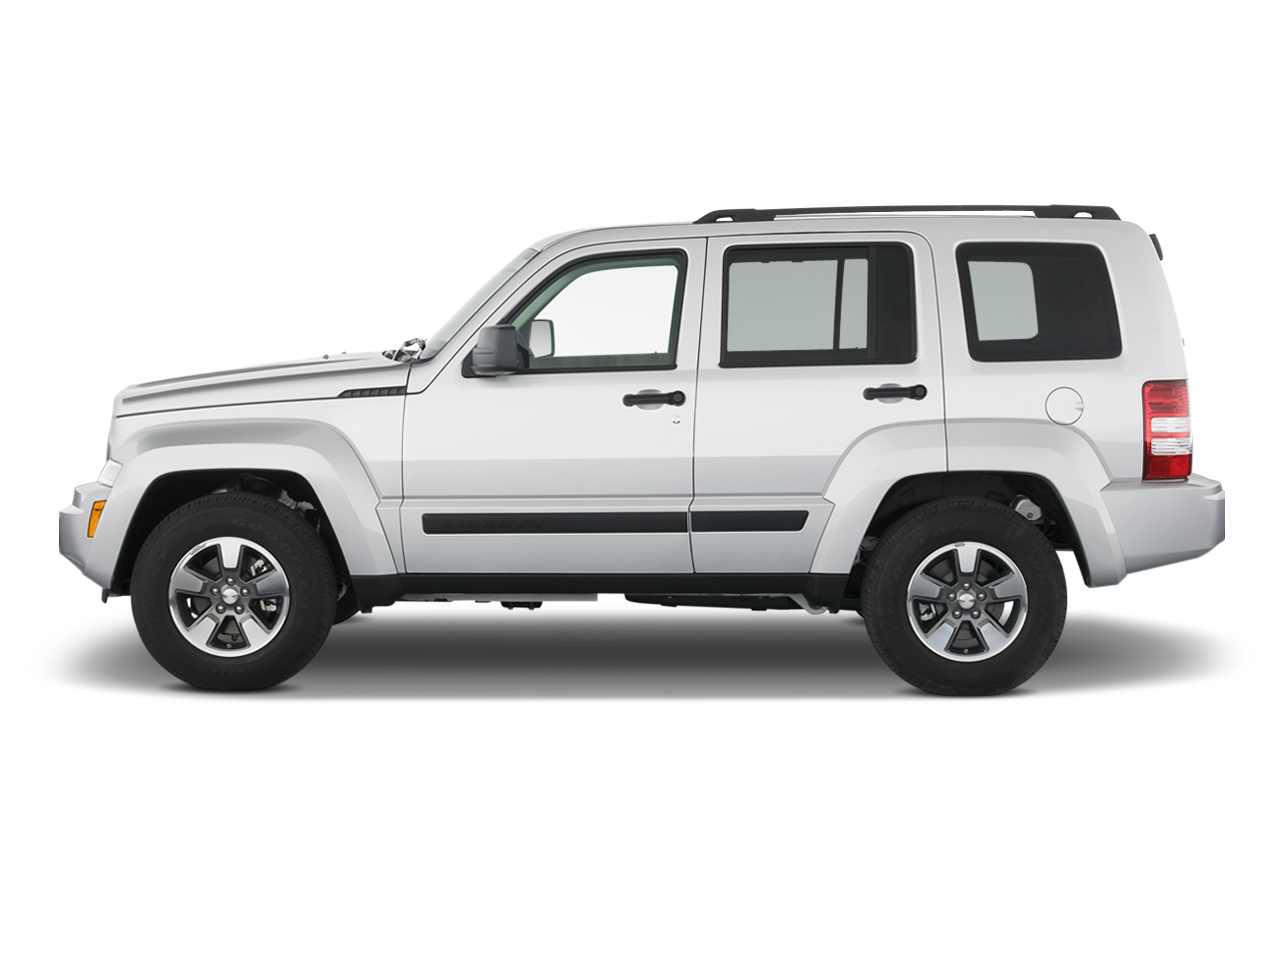 2008 jeep liberty suv latest news reviews and features automobile magazine. Black Bedroom Furniture Sets. Home Design Ideas